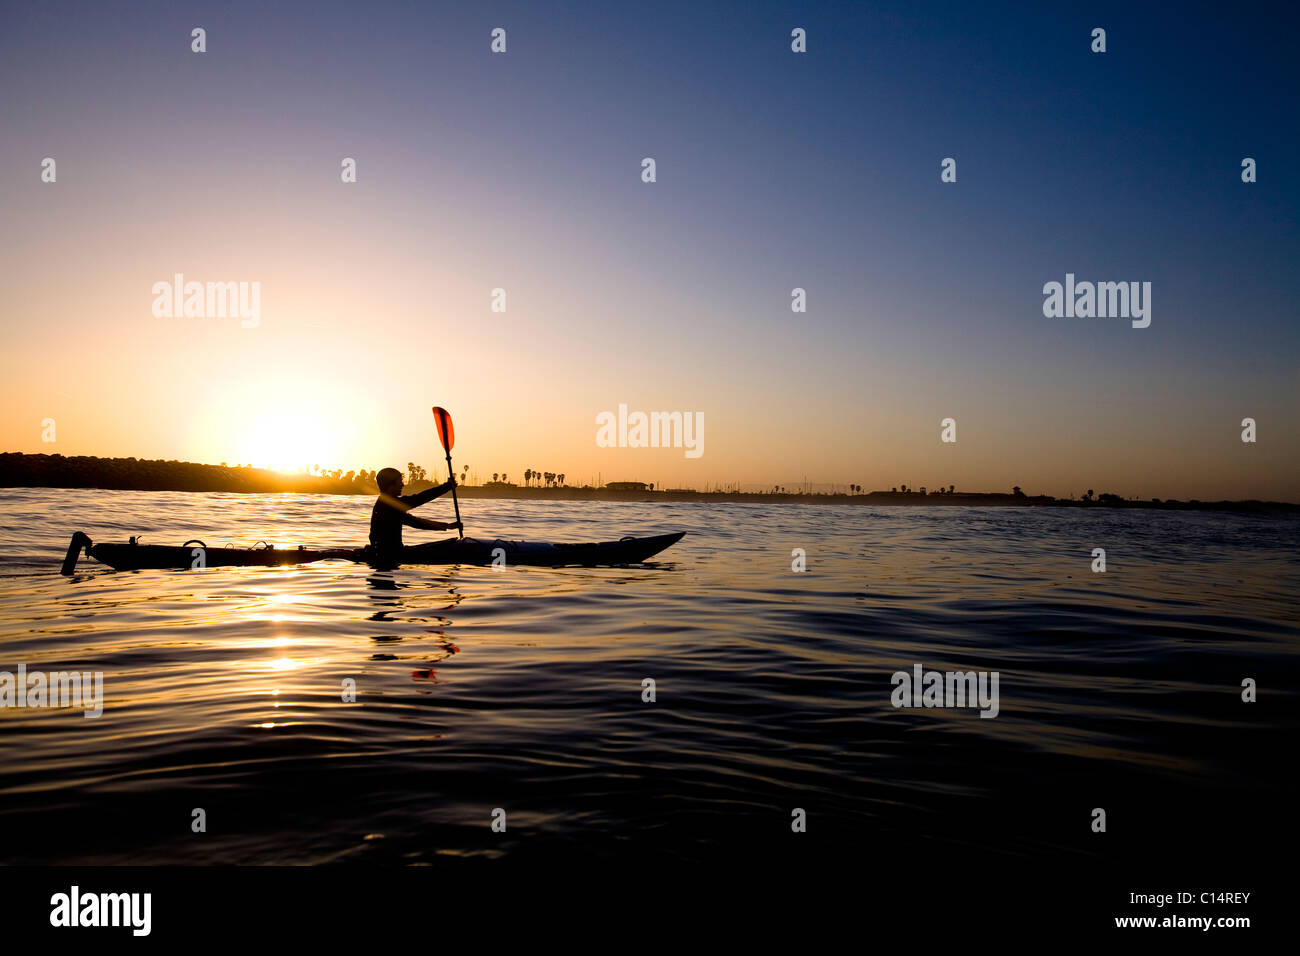 A silhouetted young man paddles a touring kayak just outside of Ventura Harbor in Ventura, California. - Stock Image